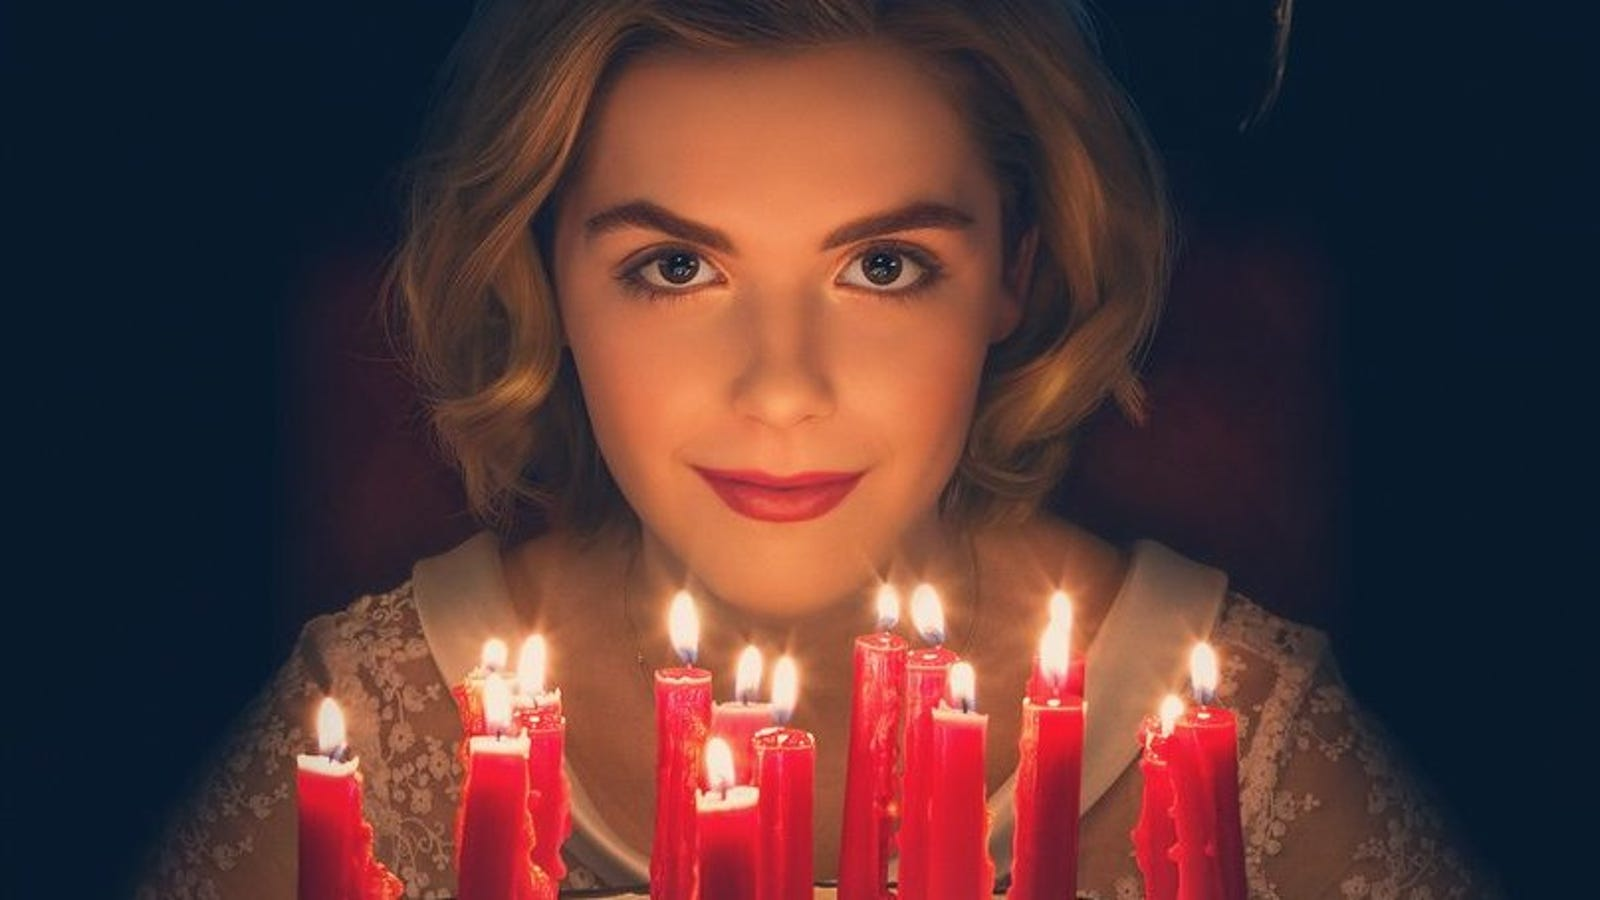 The Chilling Adventures of Sabrina: Netflix Debuts Trailer